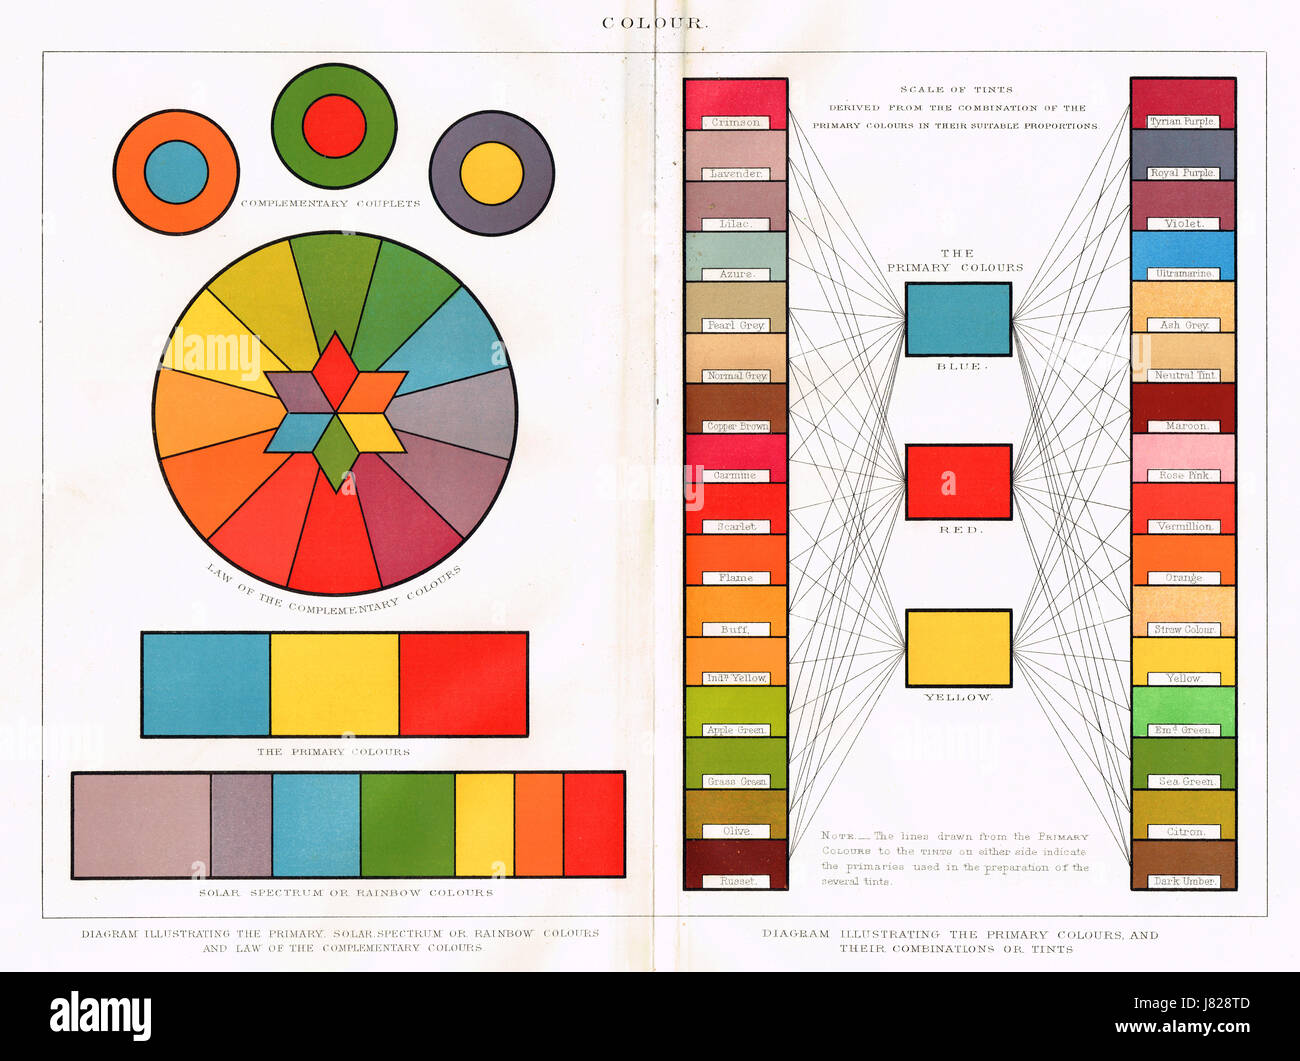 19th century primary colours, solar spectrum & rainbow chart diagram - Stock Image